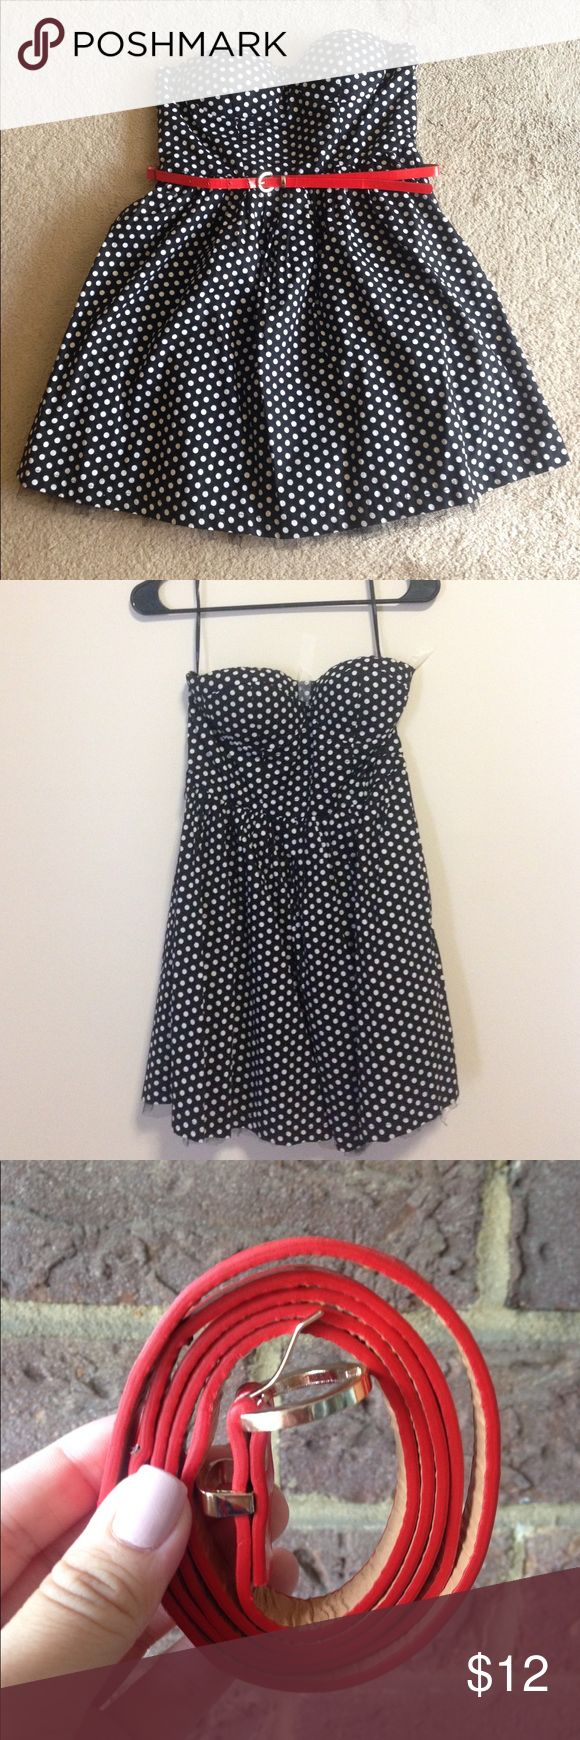 Polka dot dress Forever 21 Pretty and classic black-and-white polka dot dress. Very lightly worn and comes with eye catching red belt! Strapless with silicone lining that prevents it from budging! Perfect for an adorable summer night out :) Forever 21 Dresses Strapless